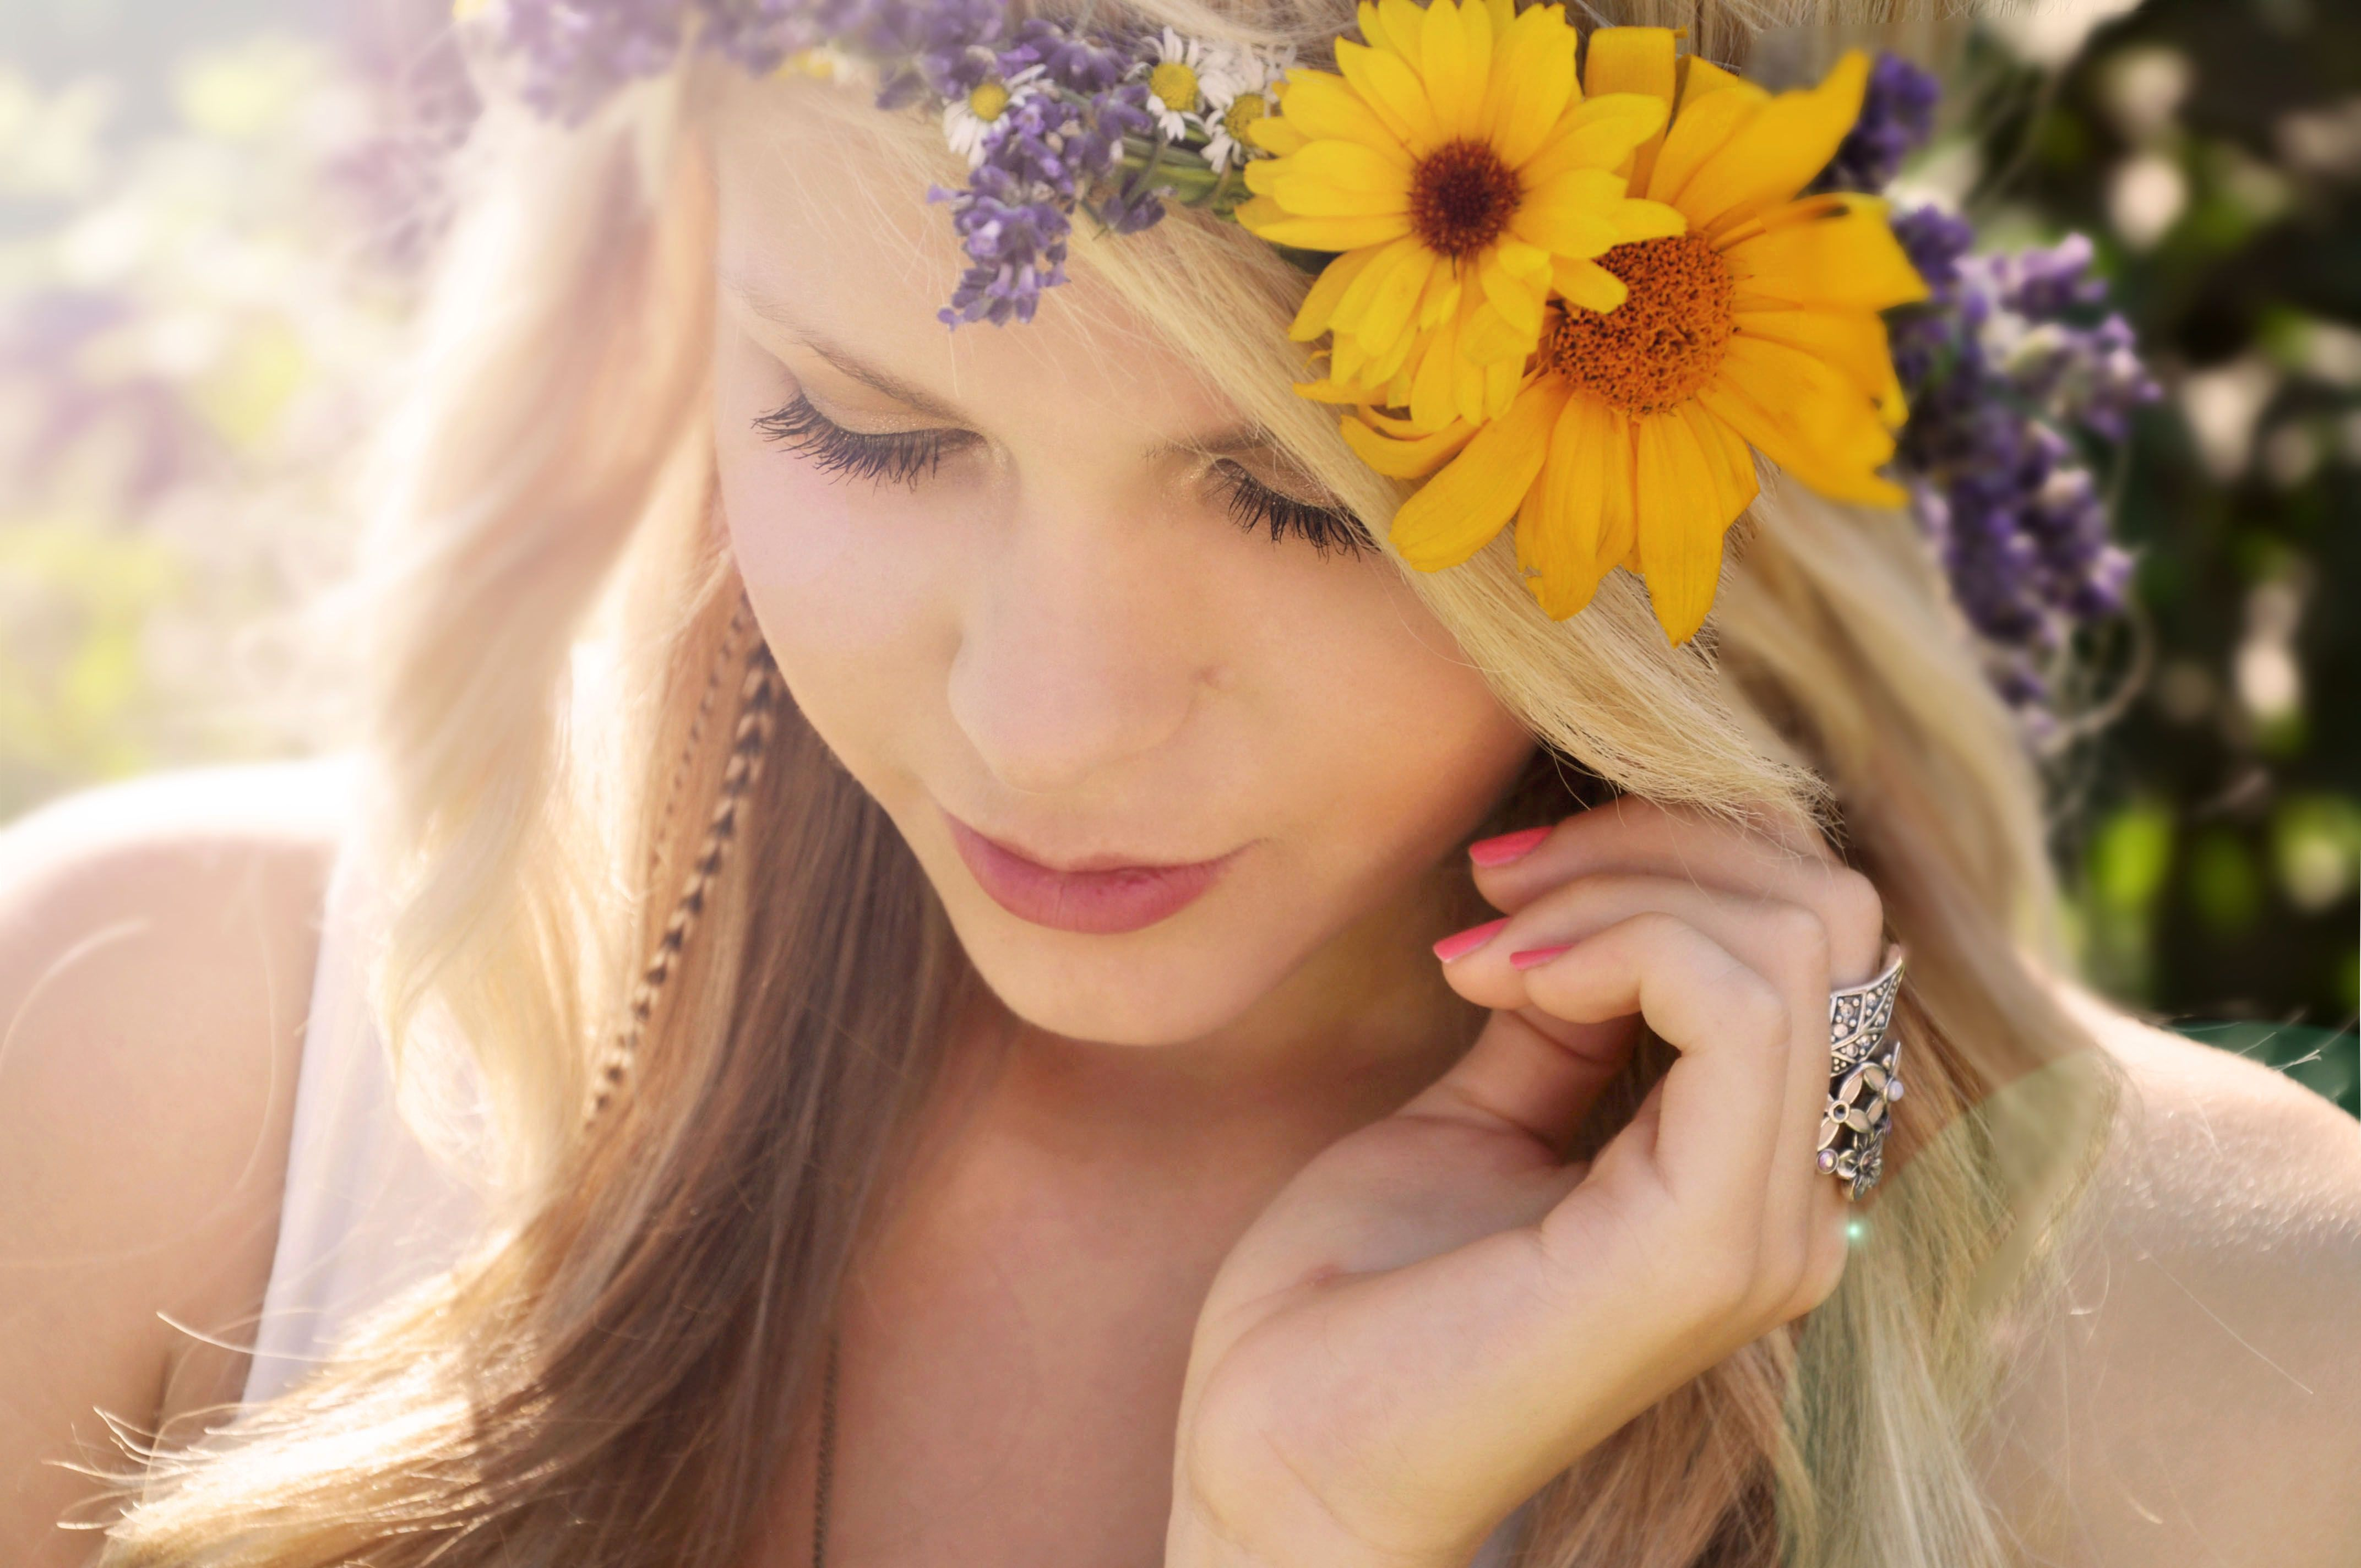 Pin by Kerri Fiori on My Photography & Me Flower child